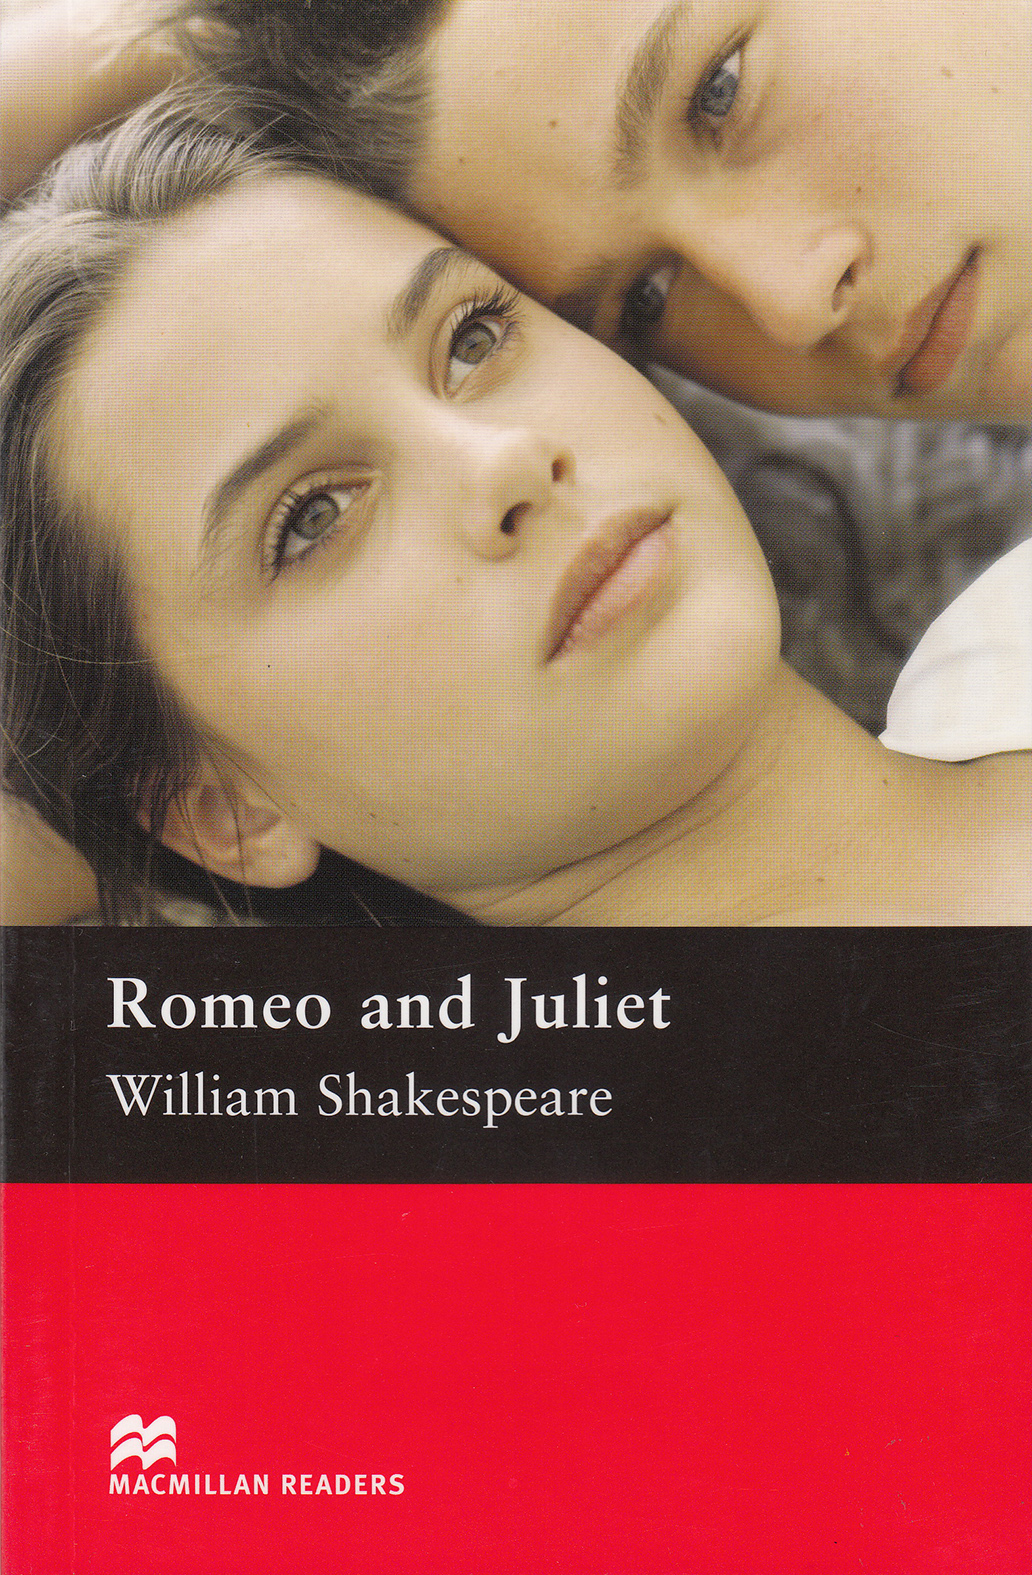 an analysis of the contrast in language in romeo and juliet a play by william shakespeare